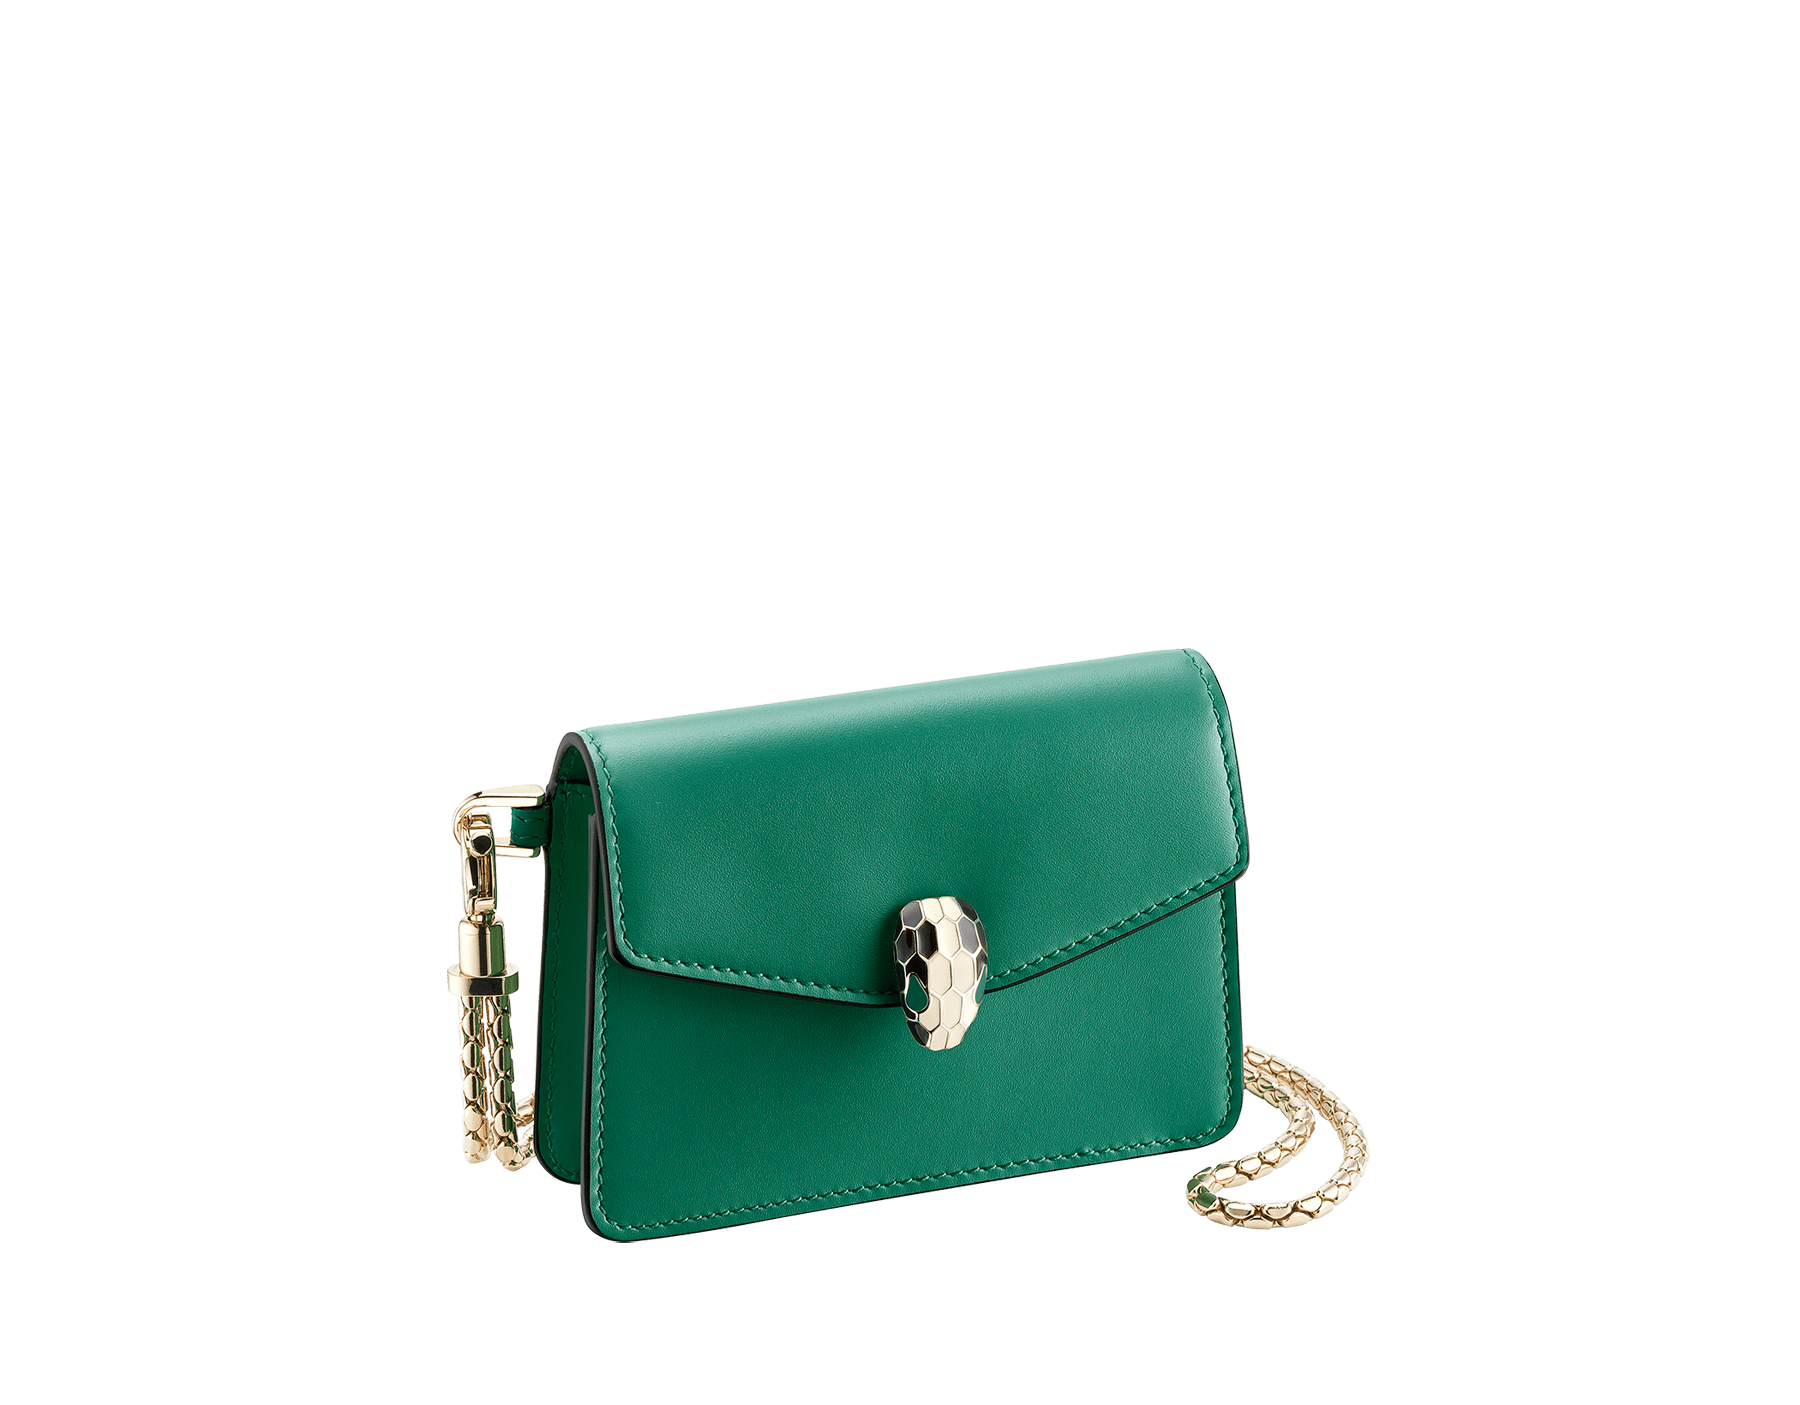 Serpenti Forever neck credit card holder in emerald green calf leather. Iconic snake head closure in black and white enamel, with green enamel eyes. 289099 image 1